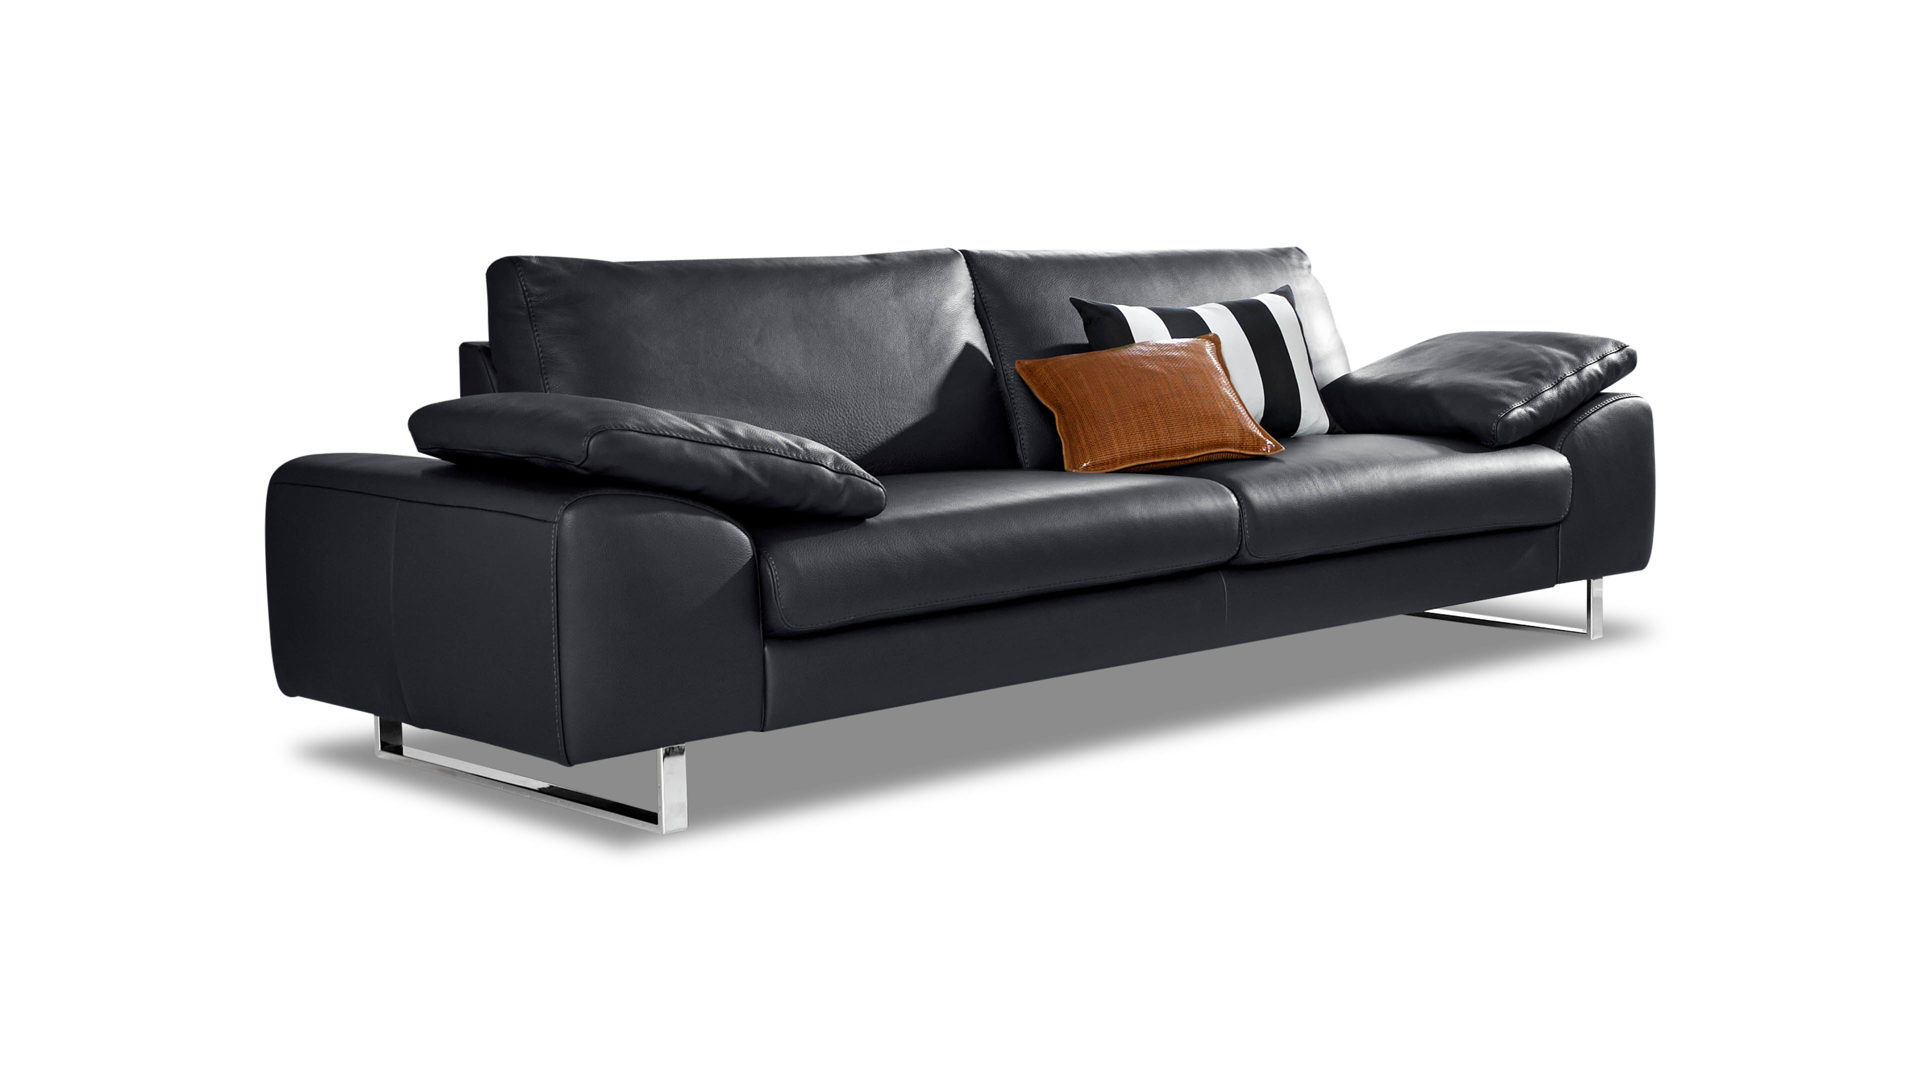 Affordable Mbel Janz Schnkirchen Mbel Az Couches Sofas Sofas Extra Breites  Partnerring Collection Ledersofa Bzw Ledercouch Aus Leder In Trend Modern  With ...